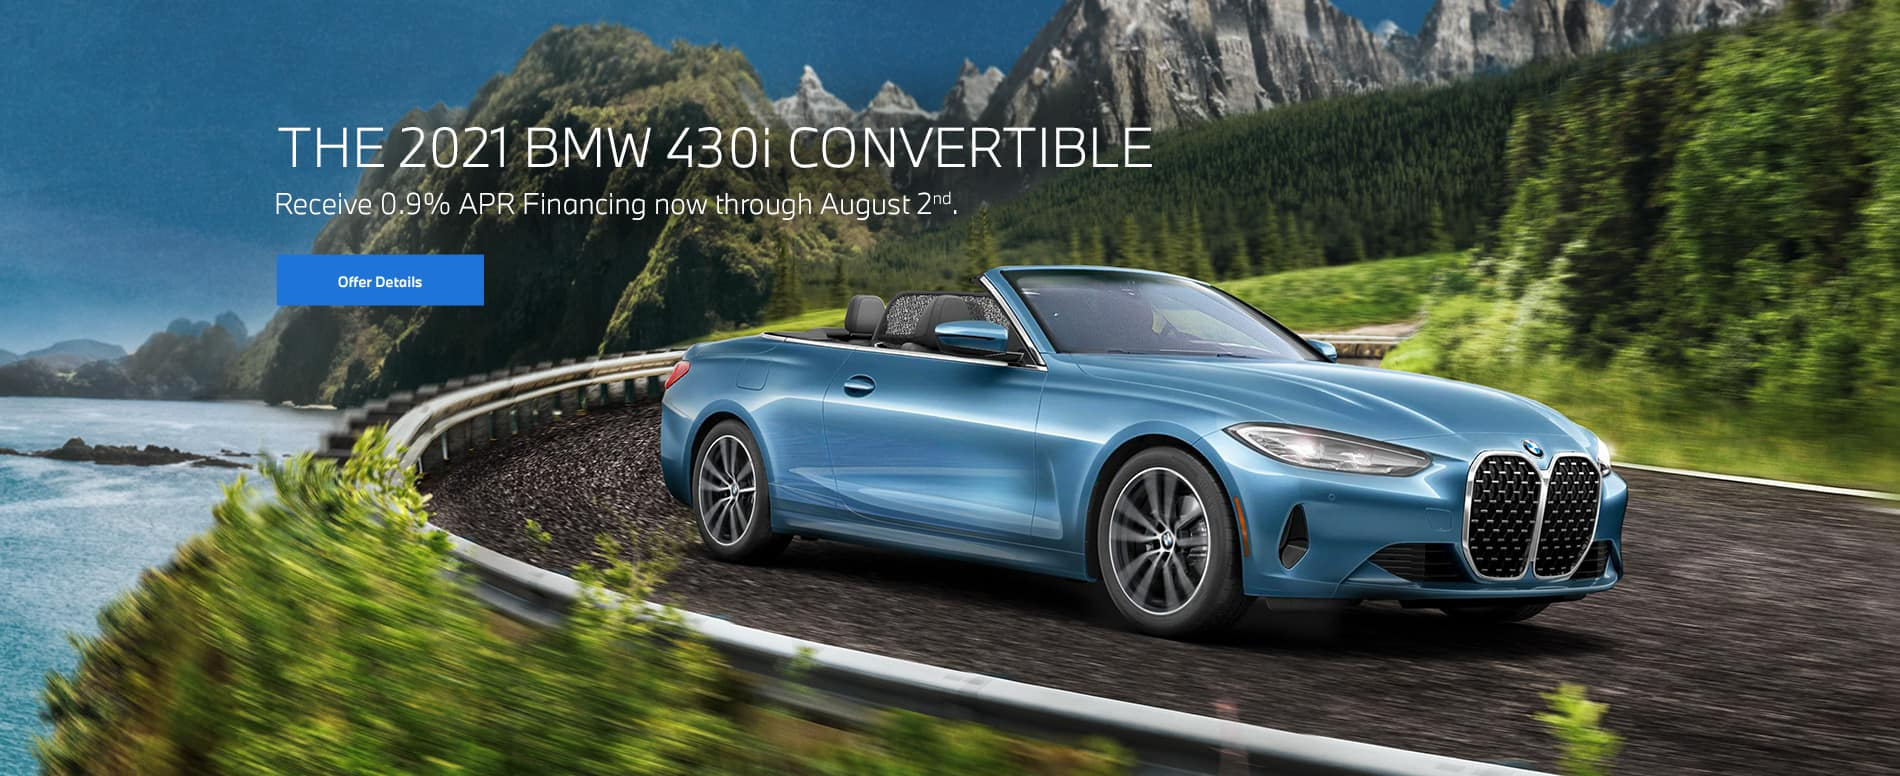 Blue 4 series convertible going around a bend on oceanside highway